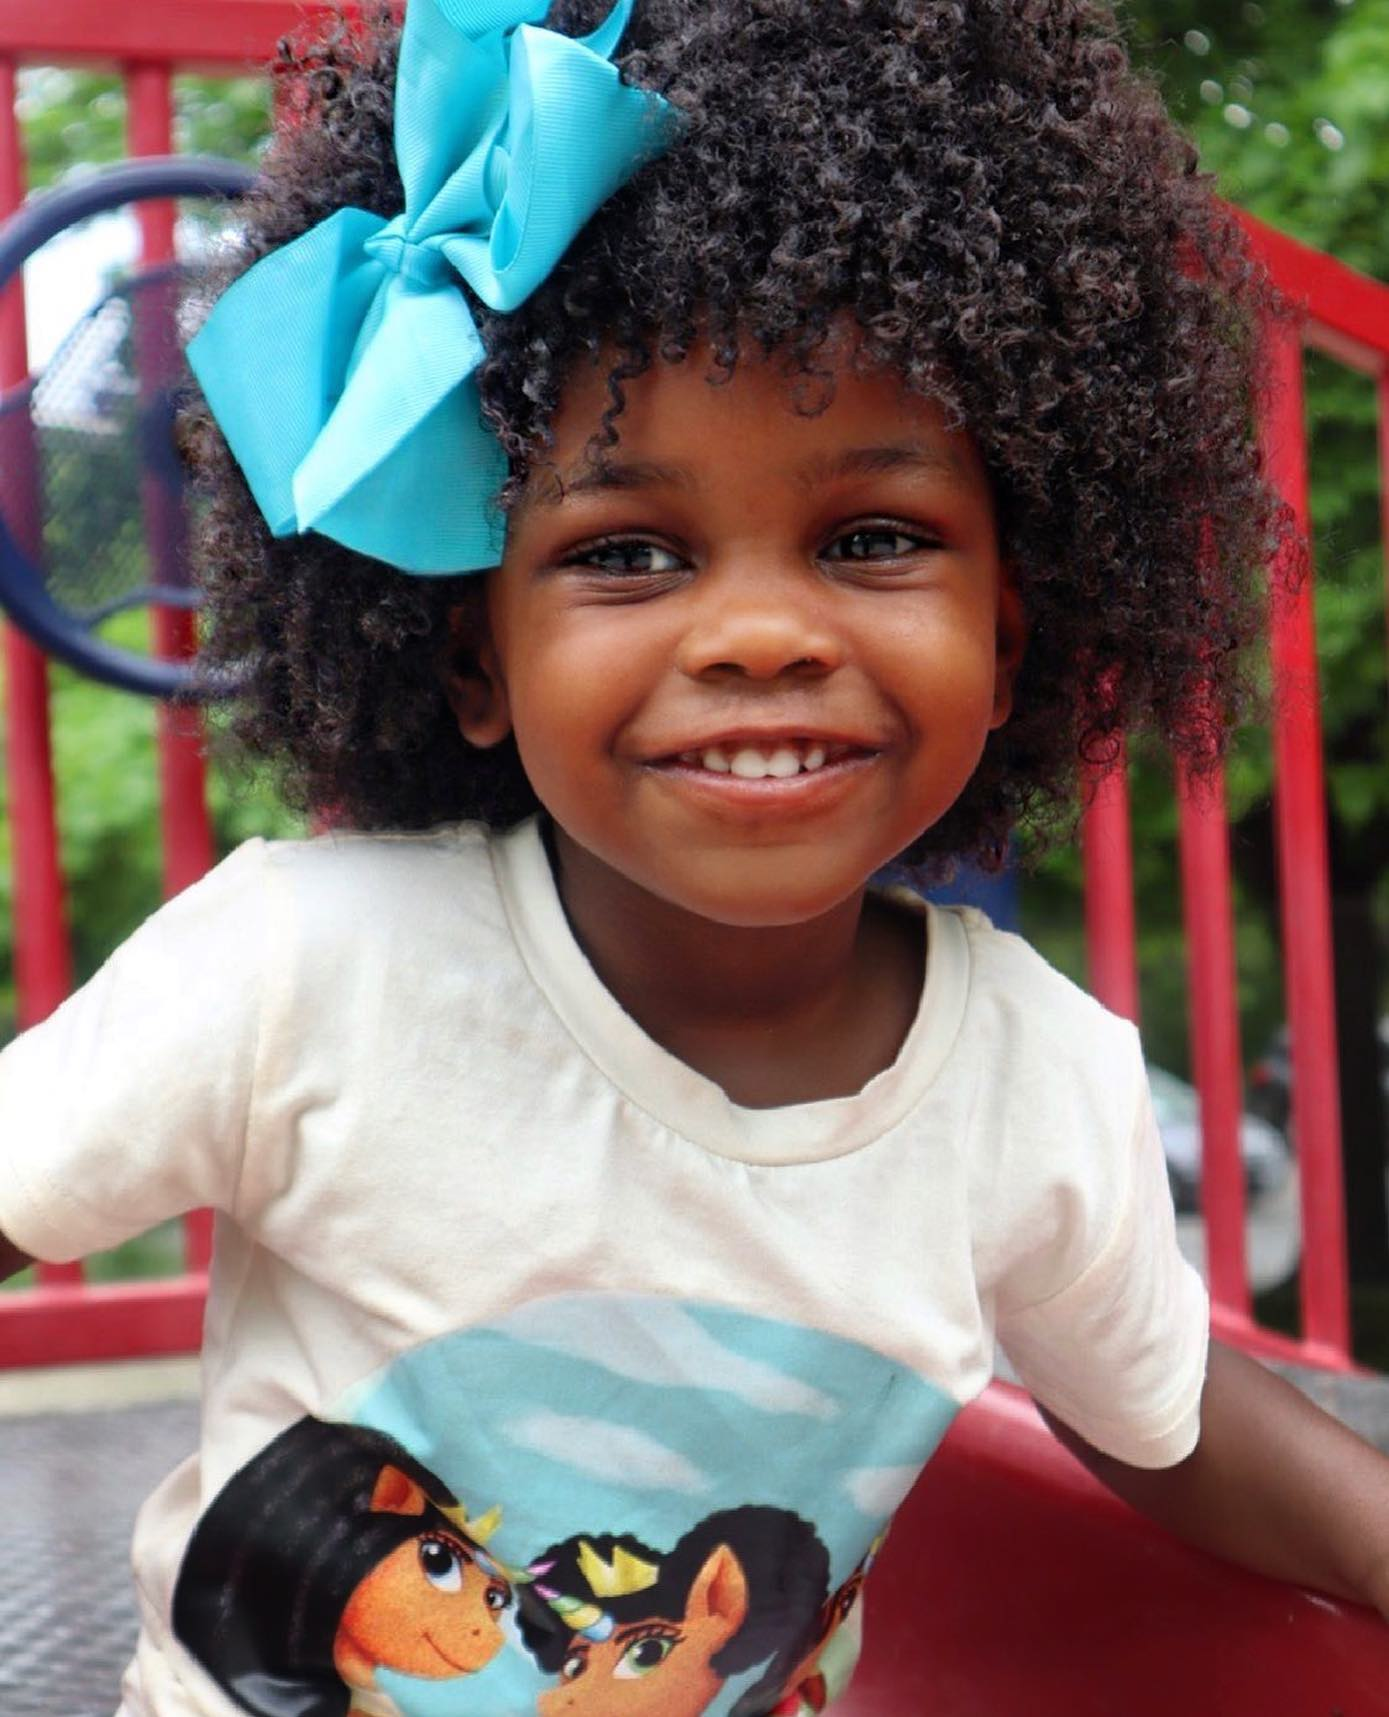 Regardless of whether or not you're well-versed in taking care of your own curls or coils, caring for a child's curly hair can be a real challenge. The child may have a different hair texture, porosity, or density than what you're used to. Finding the right products for your little one can make all the difference. We've narrowed it down to a few kid friendly lines such as @sheamoisturebaby & KIDS, @curls KIDS, @auntjackiescurlsandcoils KIDS, @socozy , @frobabieshair , @curlyellie , @kinder.curls & @cantubeauty KIDS